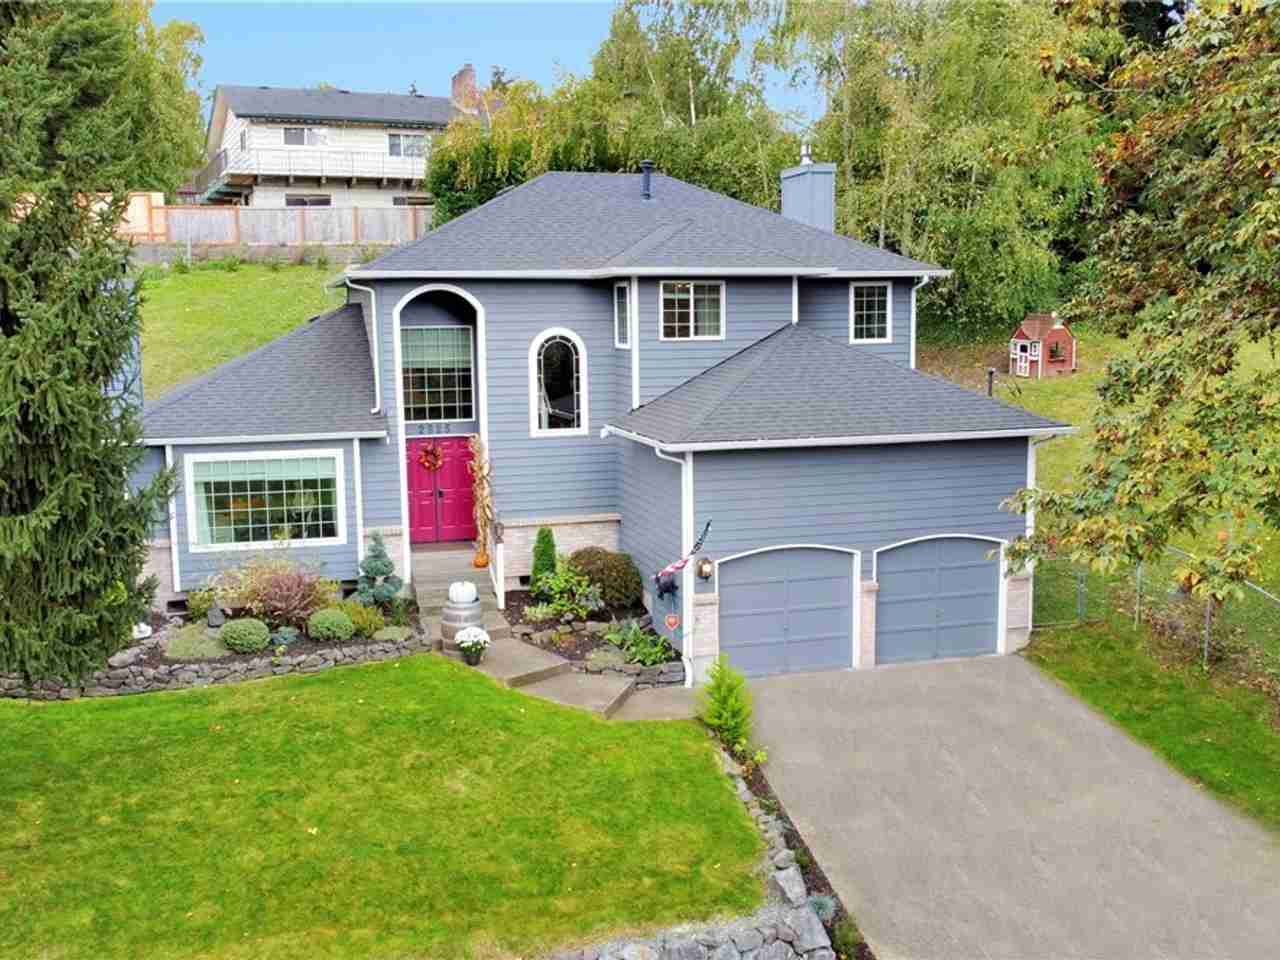 2525 106th Ave E Edgewood, WA, 98372